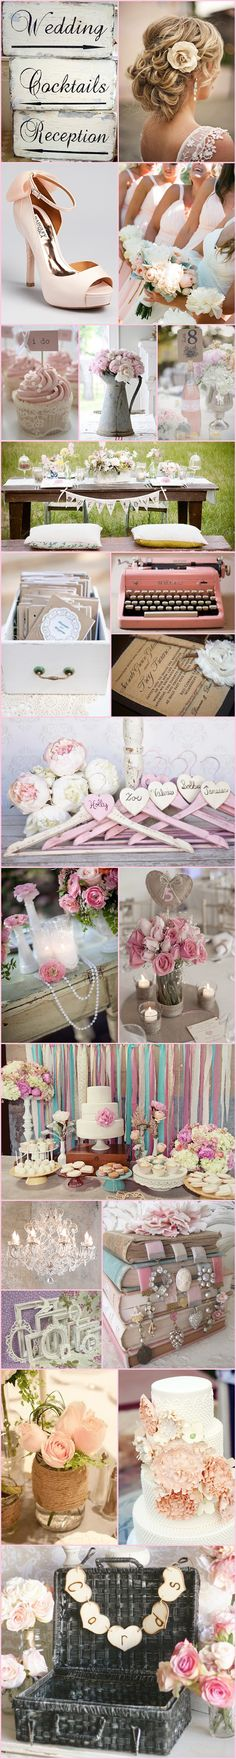 Shabby Chic Inspiration Board ~ Serendipity Corner...except there won't be any cocktails at my wedding lol